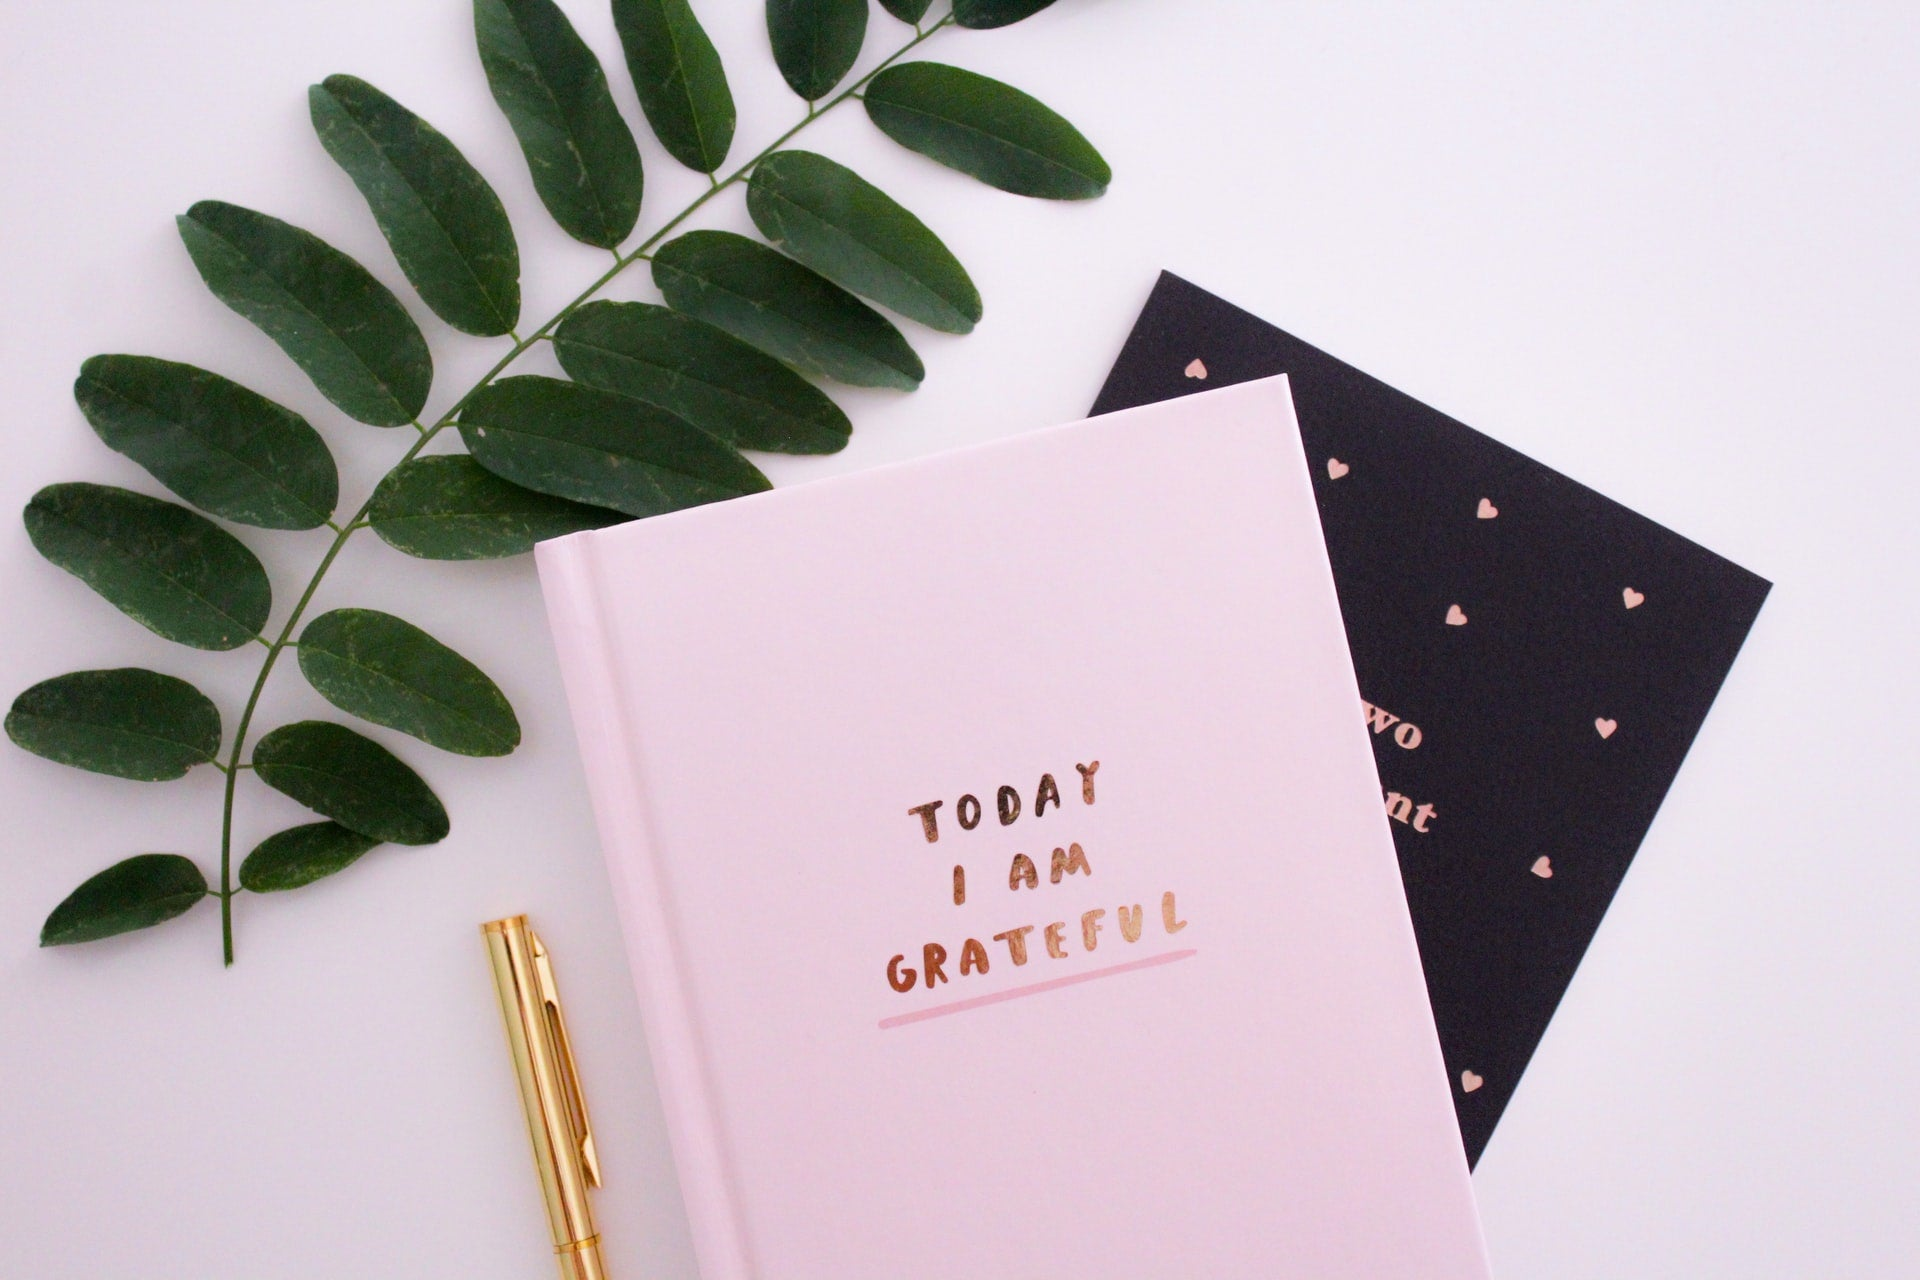 A gratitude journal given as a gift for someone with anxiety sits beside some greenery.